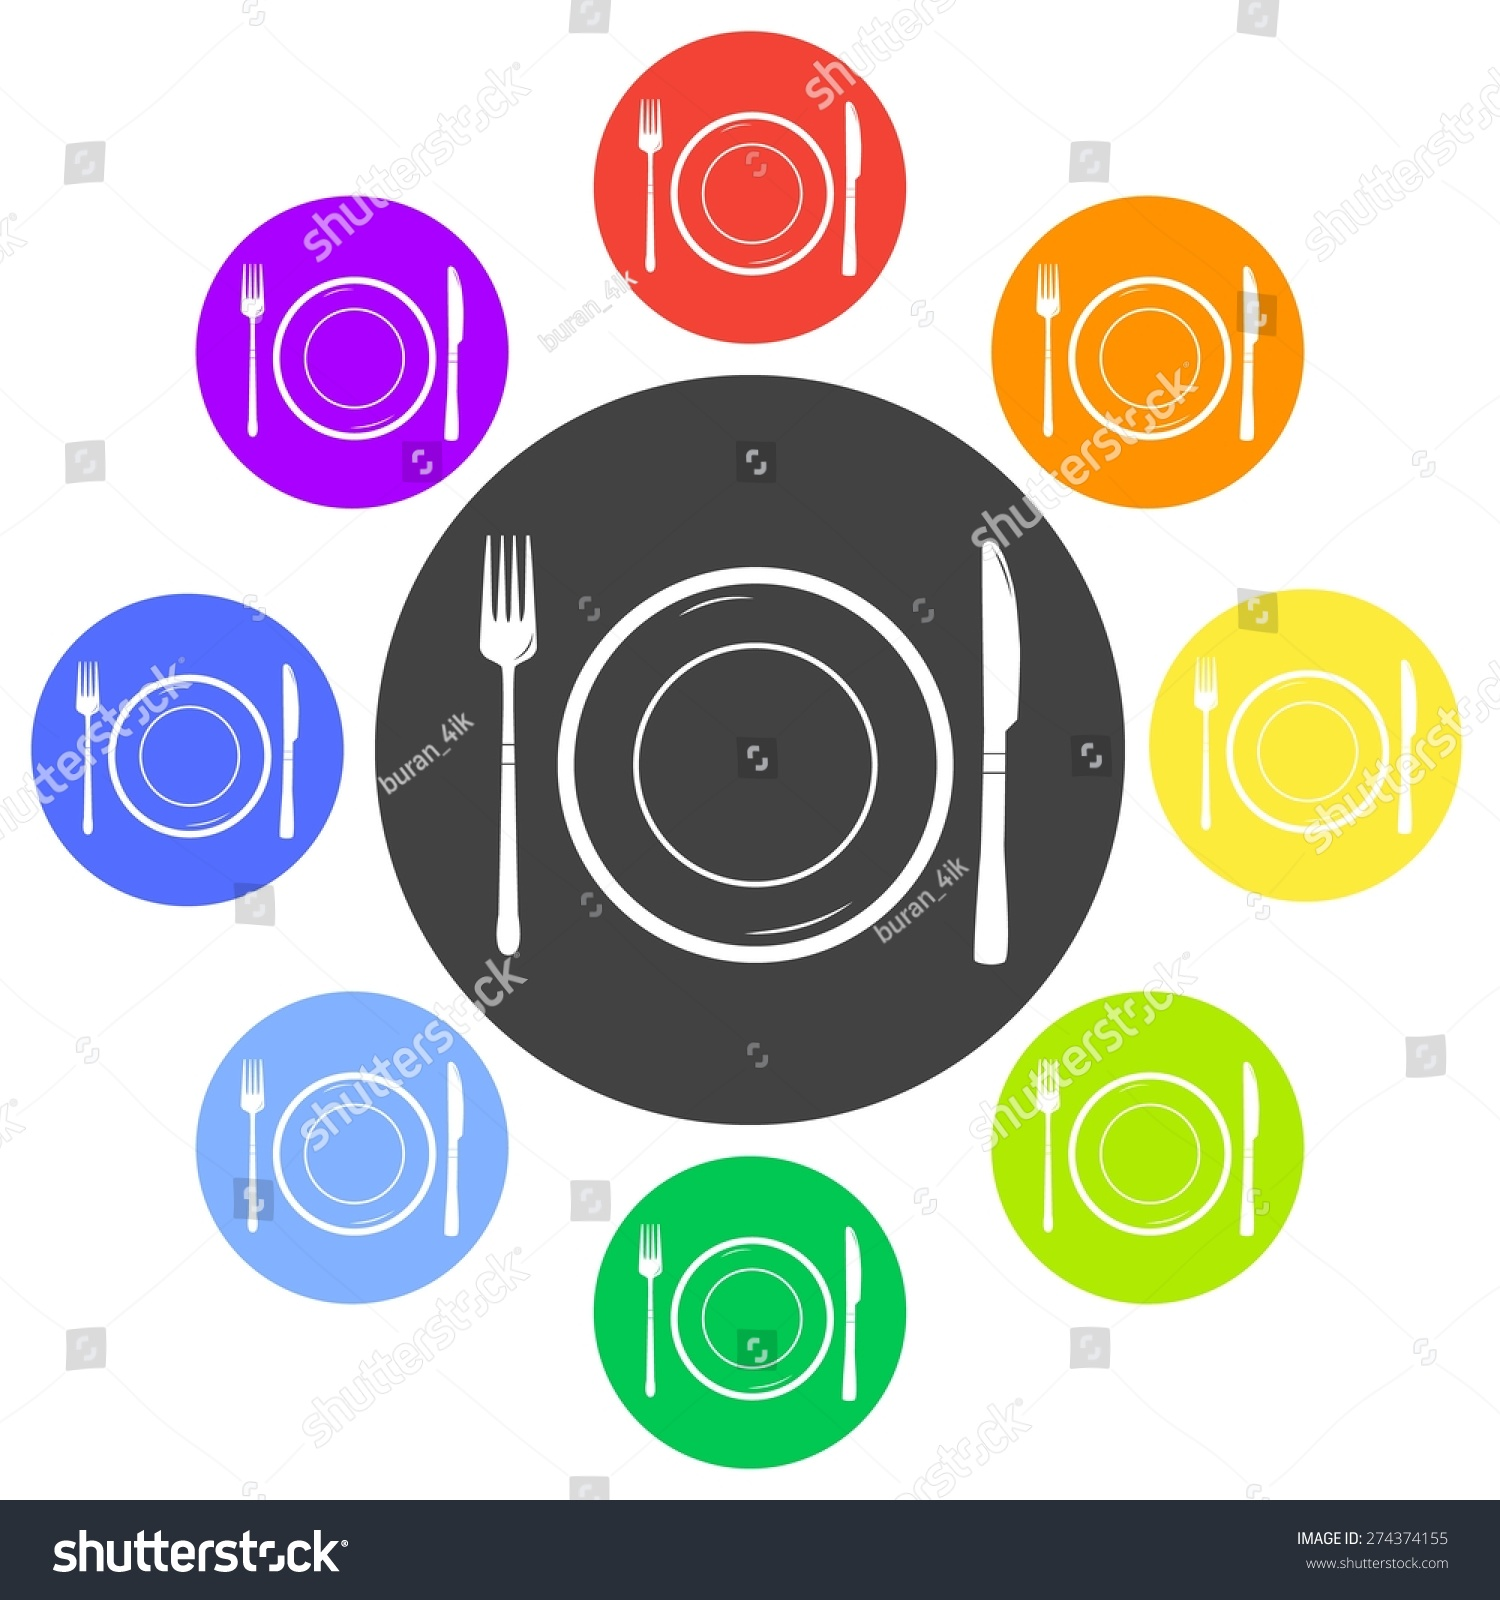 Vector illustration table setting icon set stock vector for Table design vector